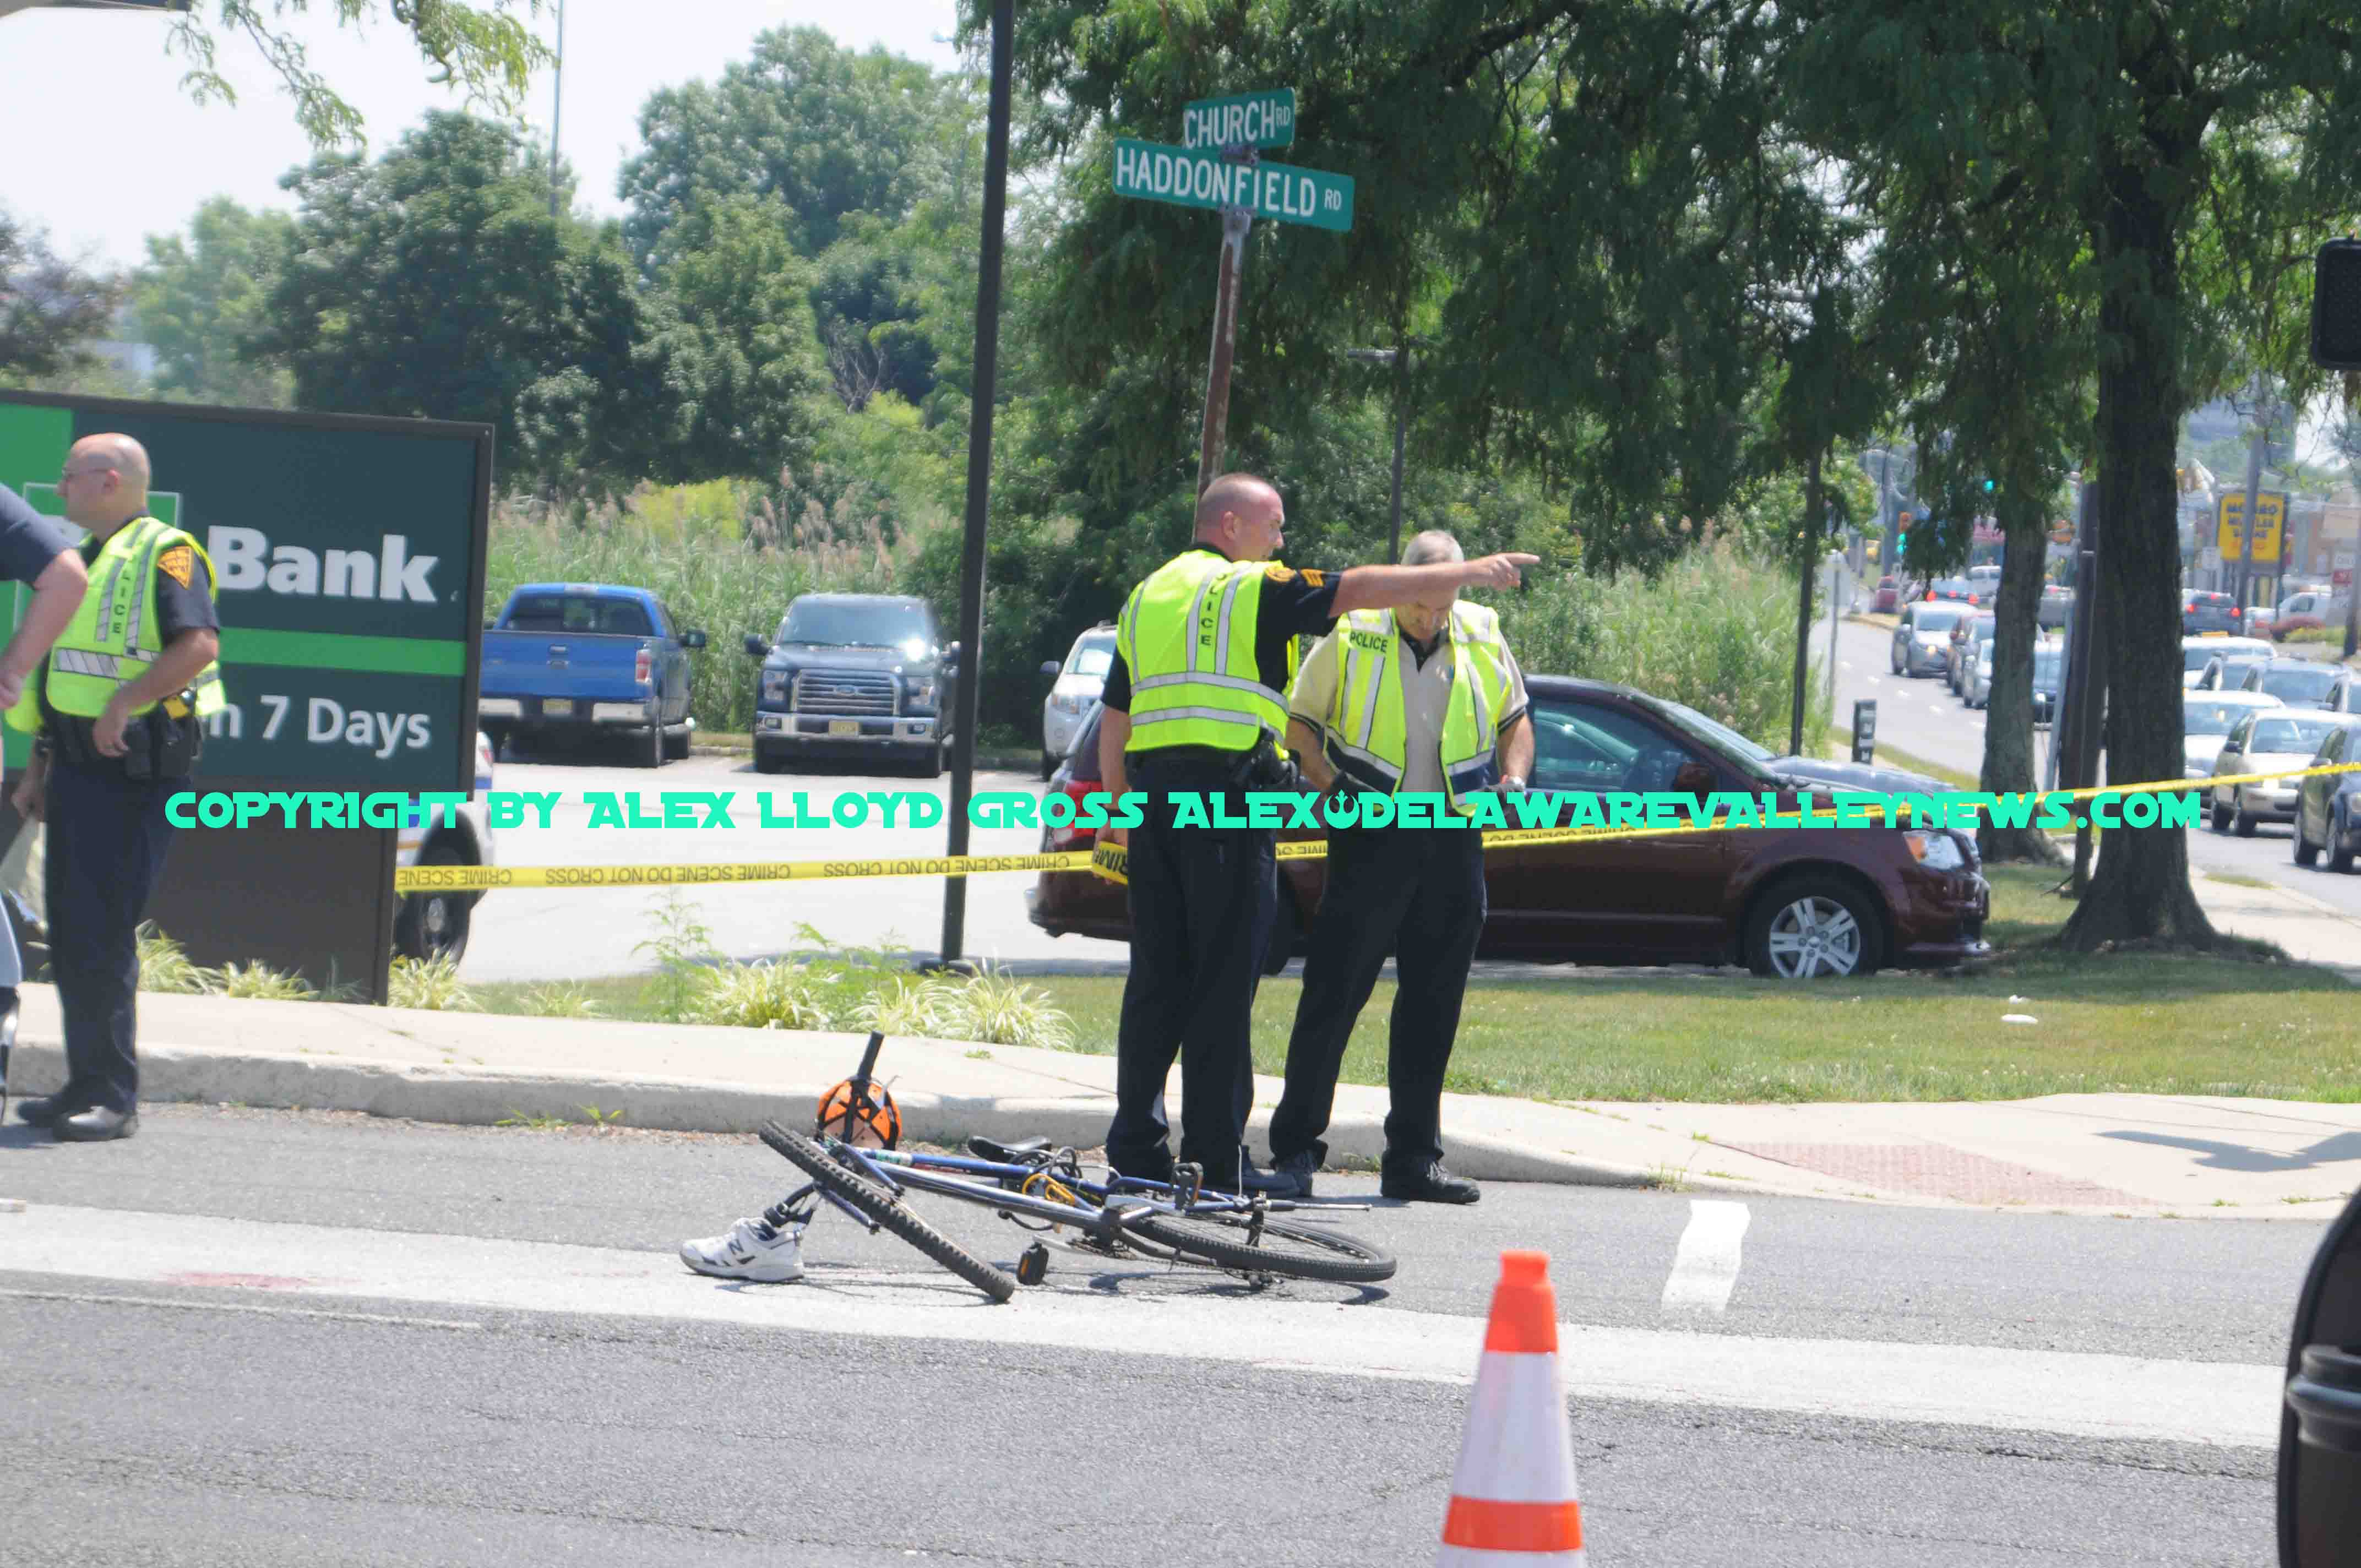 Bicycle rider hit by car in Cherry Hill | Delaware Valley News